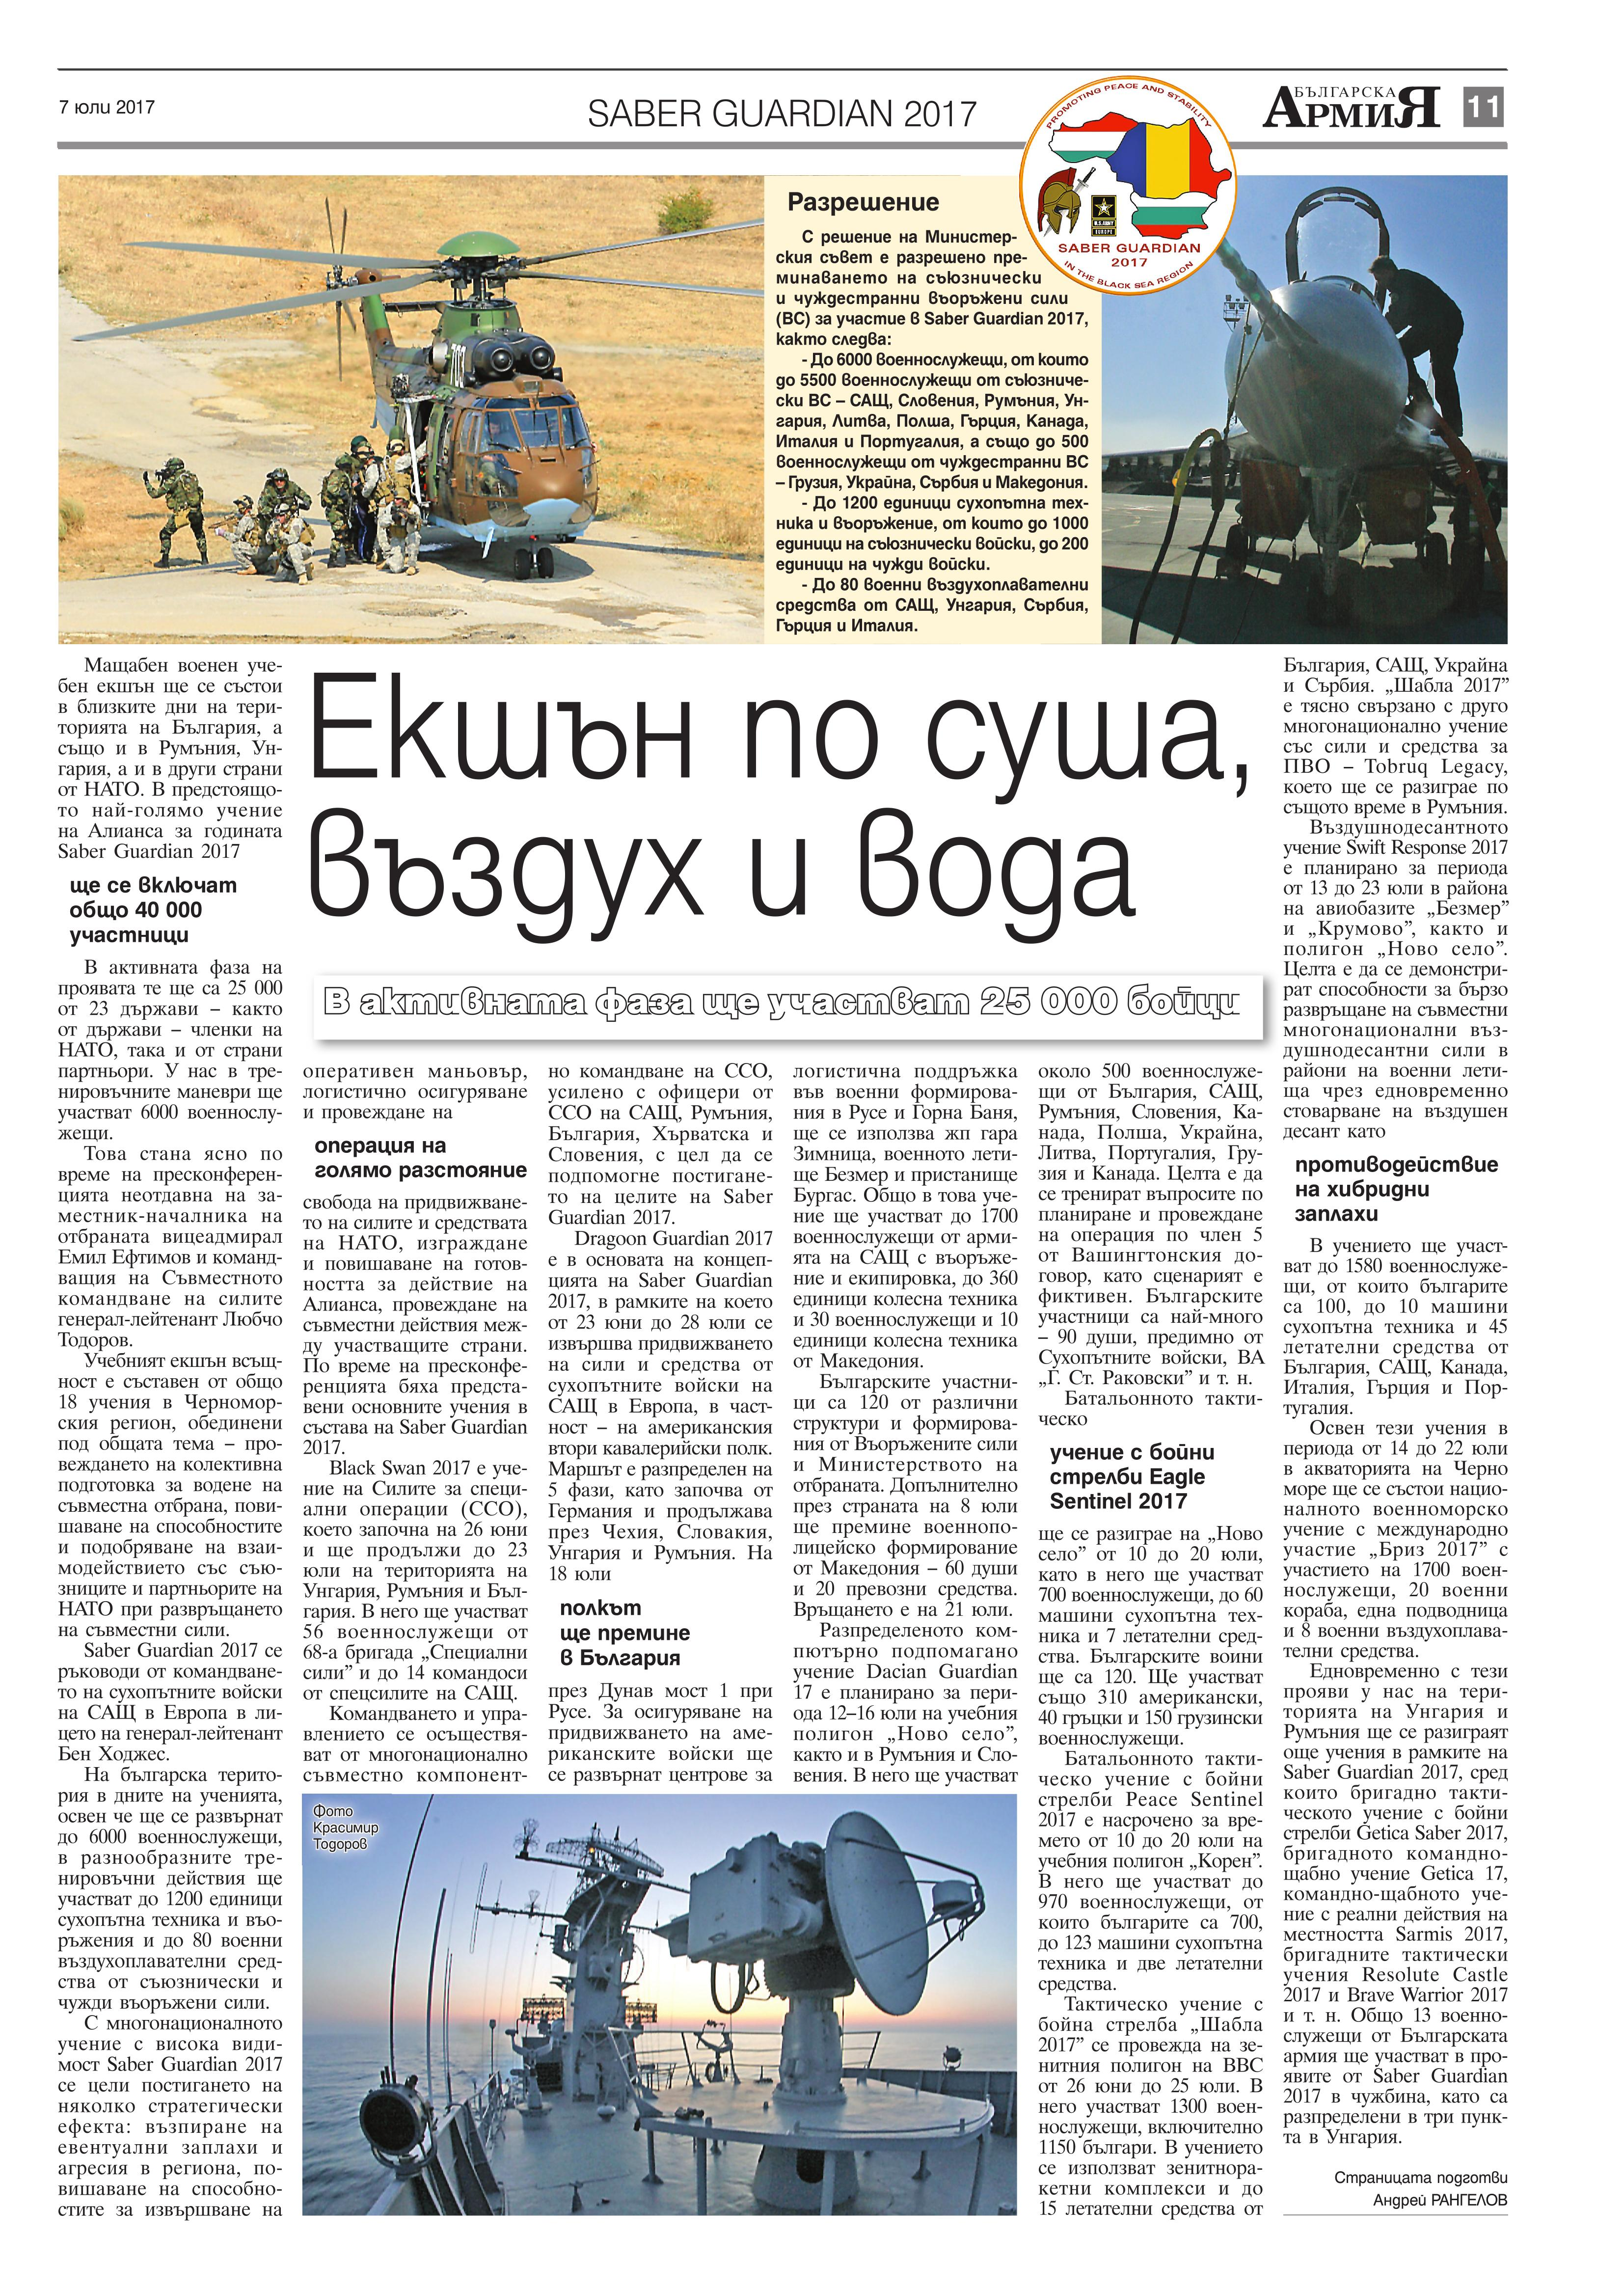 https://www.armymedia.bg/wp-content/uploads/2015/06/11.page1_-24.jpg